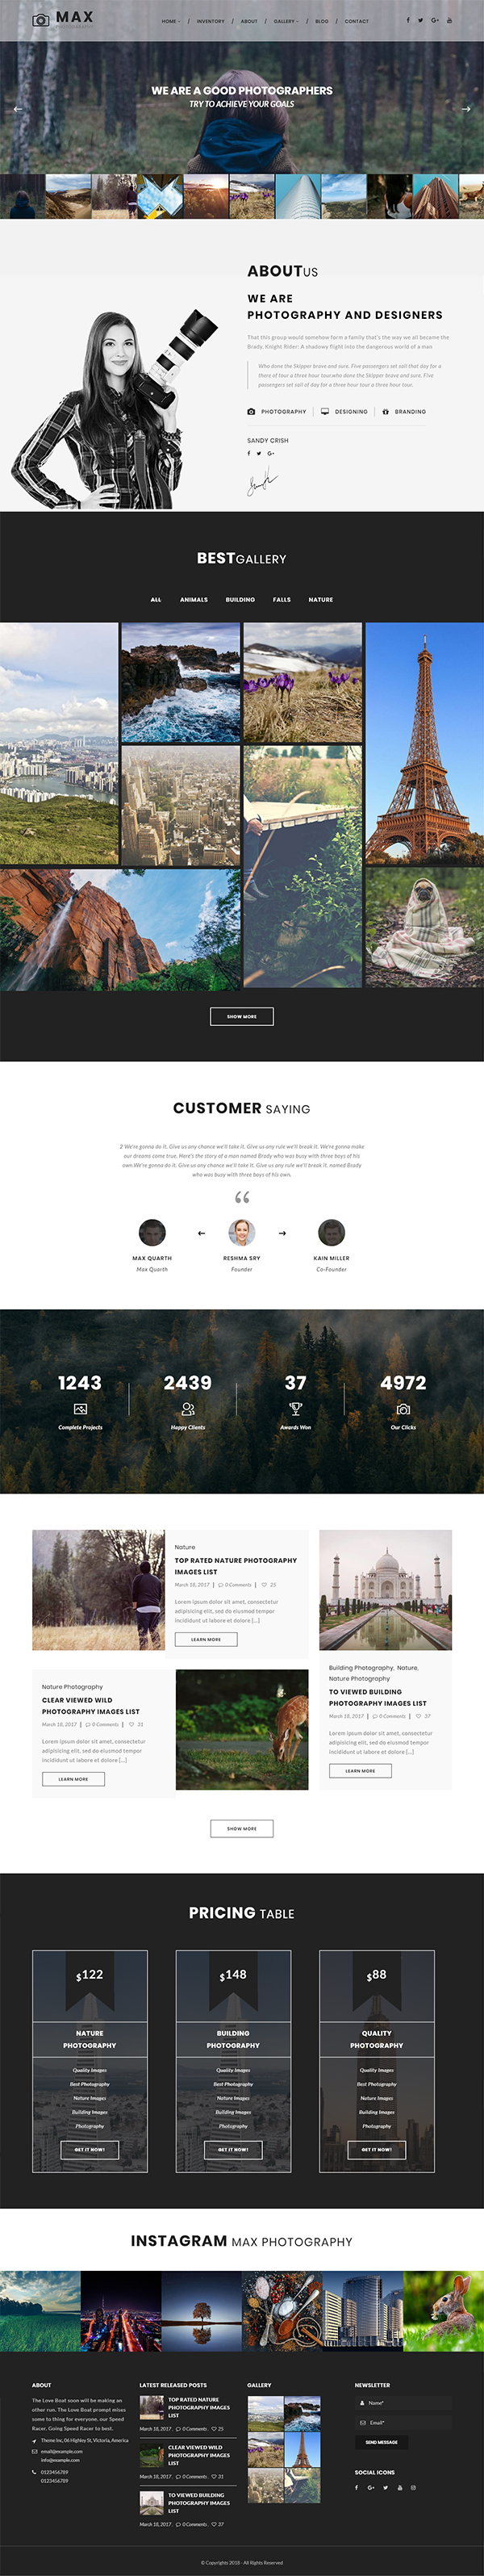 Max Photograpy - WordPress Theme for Photographers